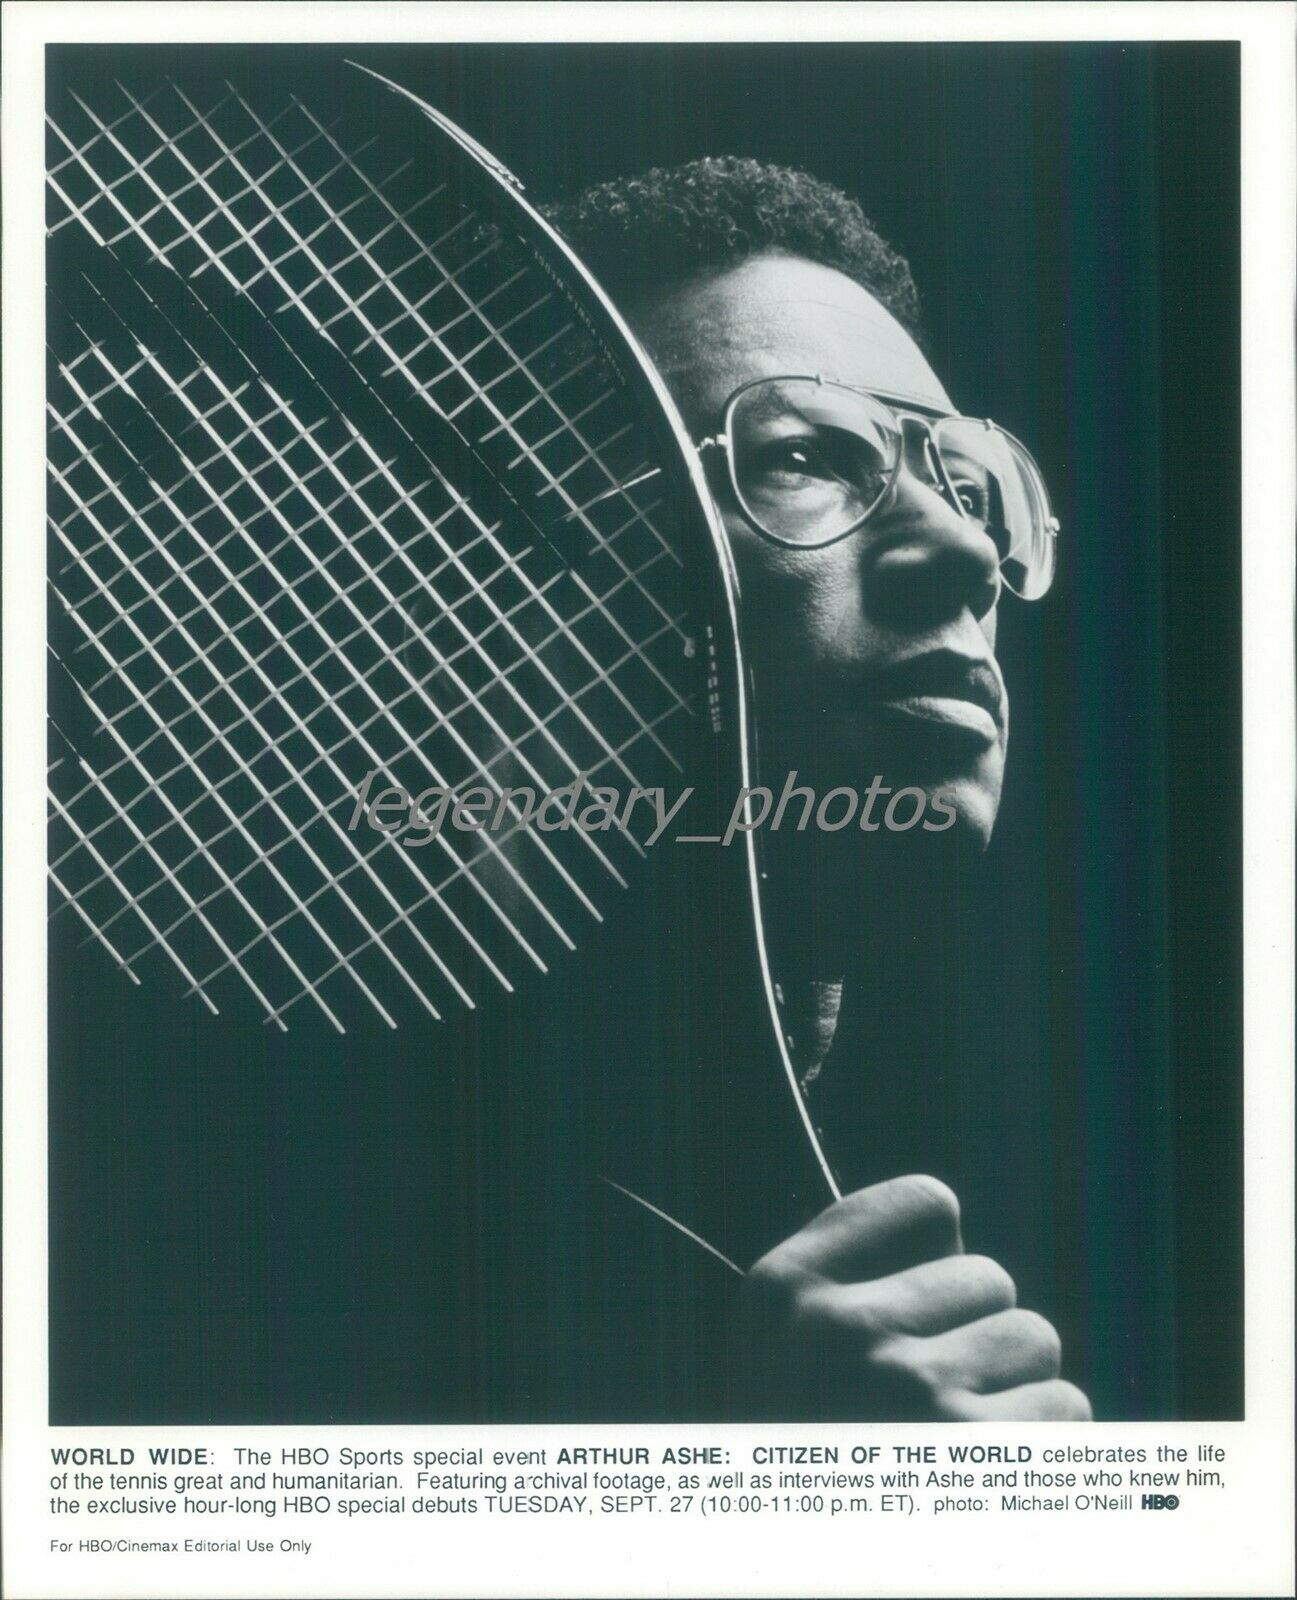 1994 Profile Professional Tennis Player Arthur Ashe Original News Service Photo - $14.99